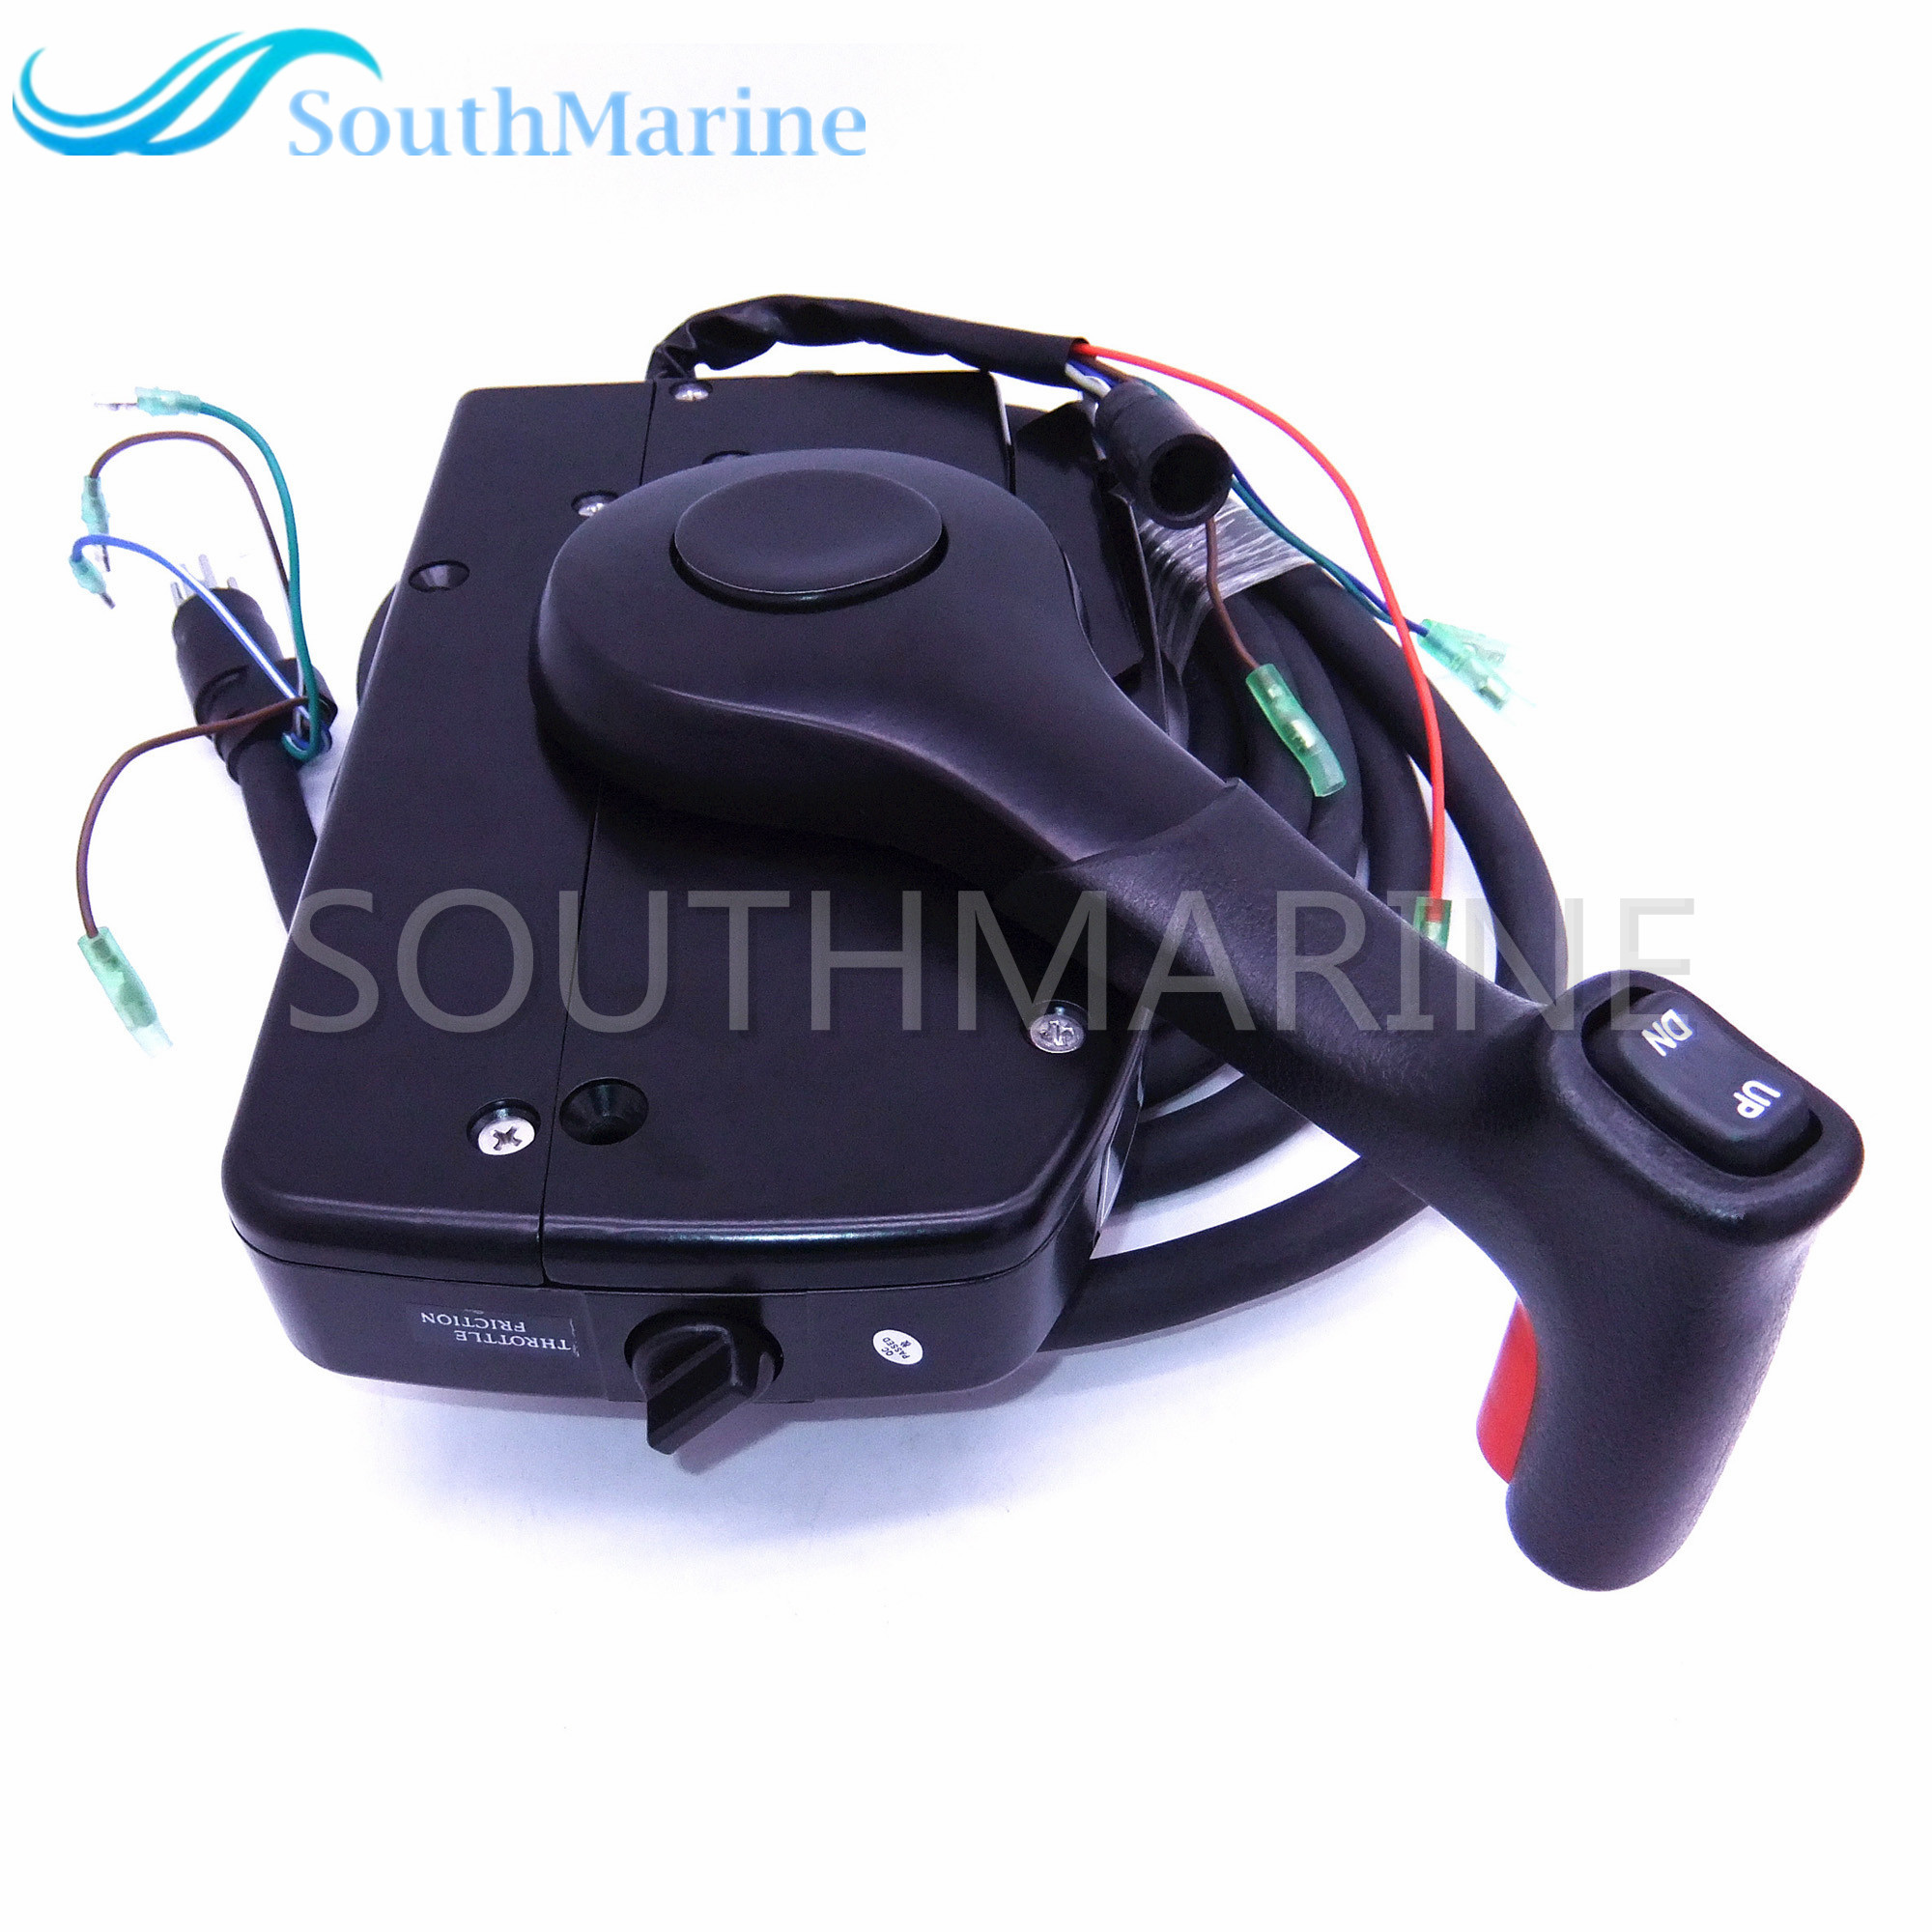 881170A15 Boat Motor Side Mount Remote Control Box With 8 Pin for Mercury Outboard Engine PT Left Side цена 2017